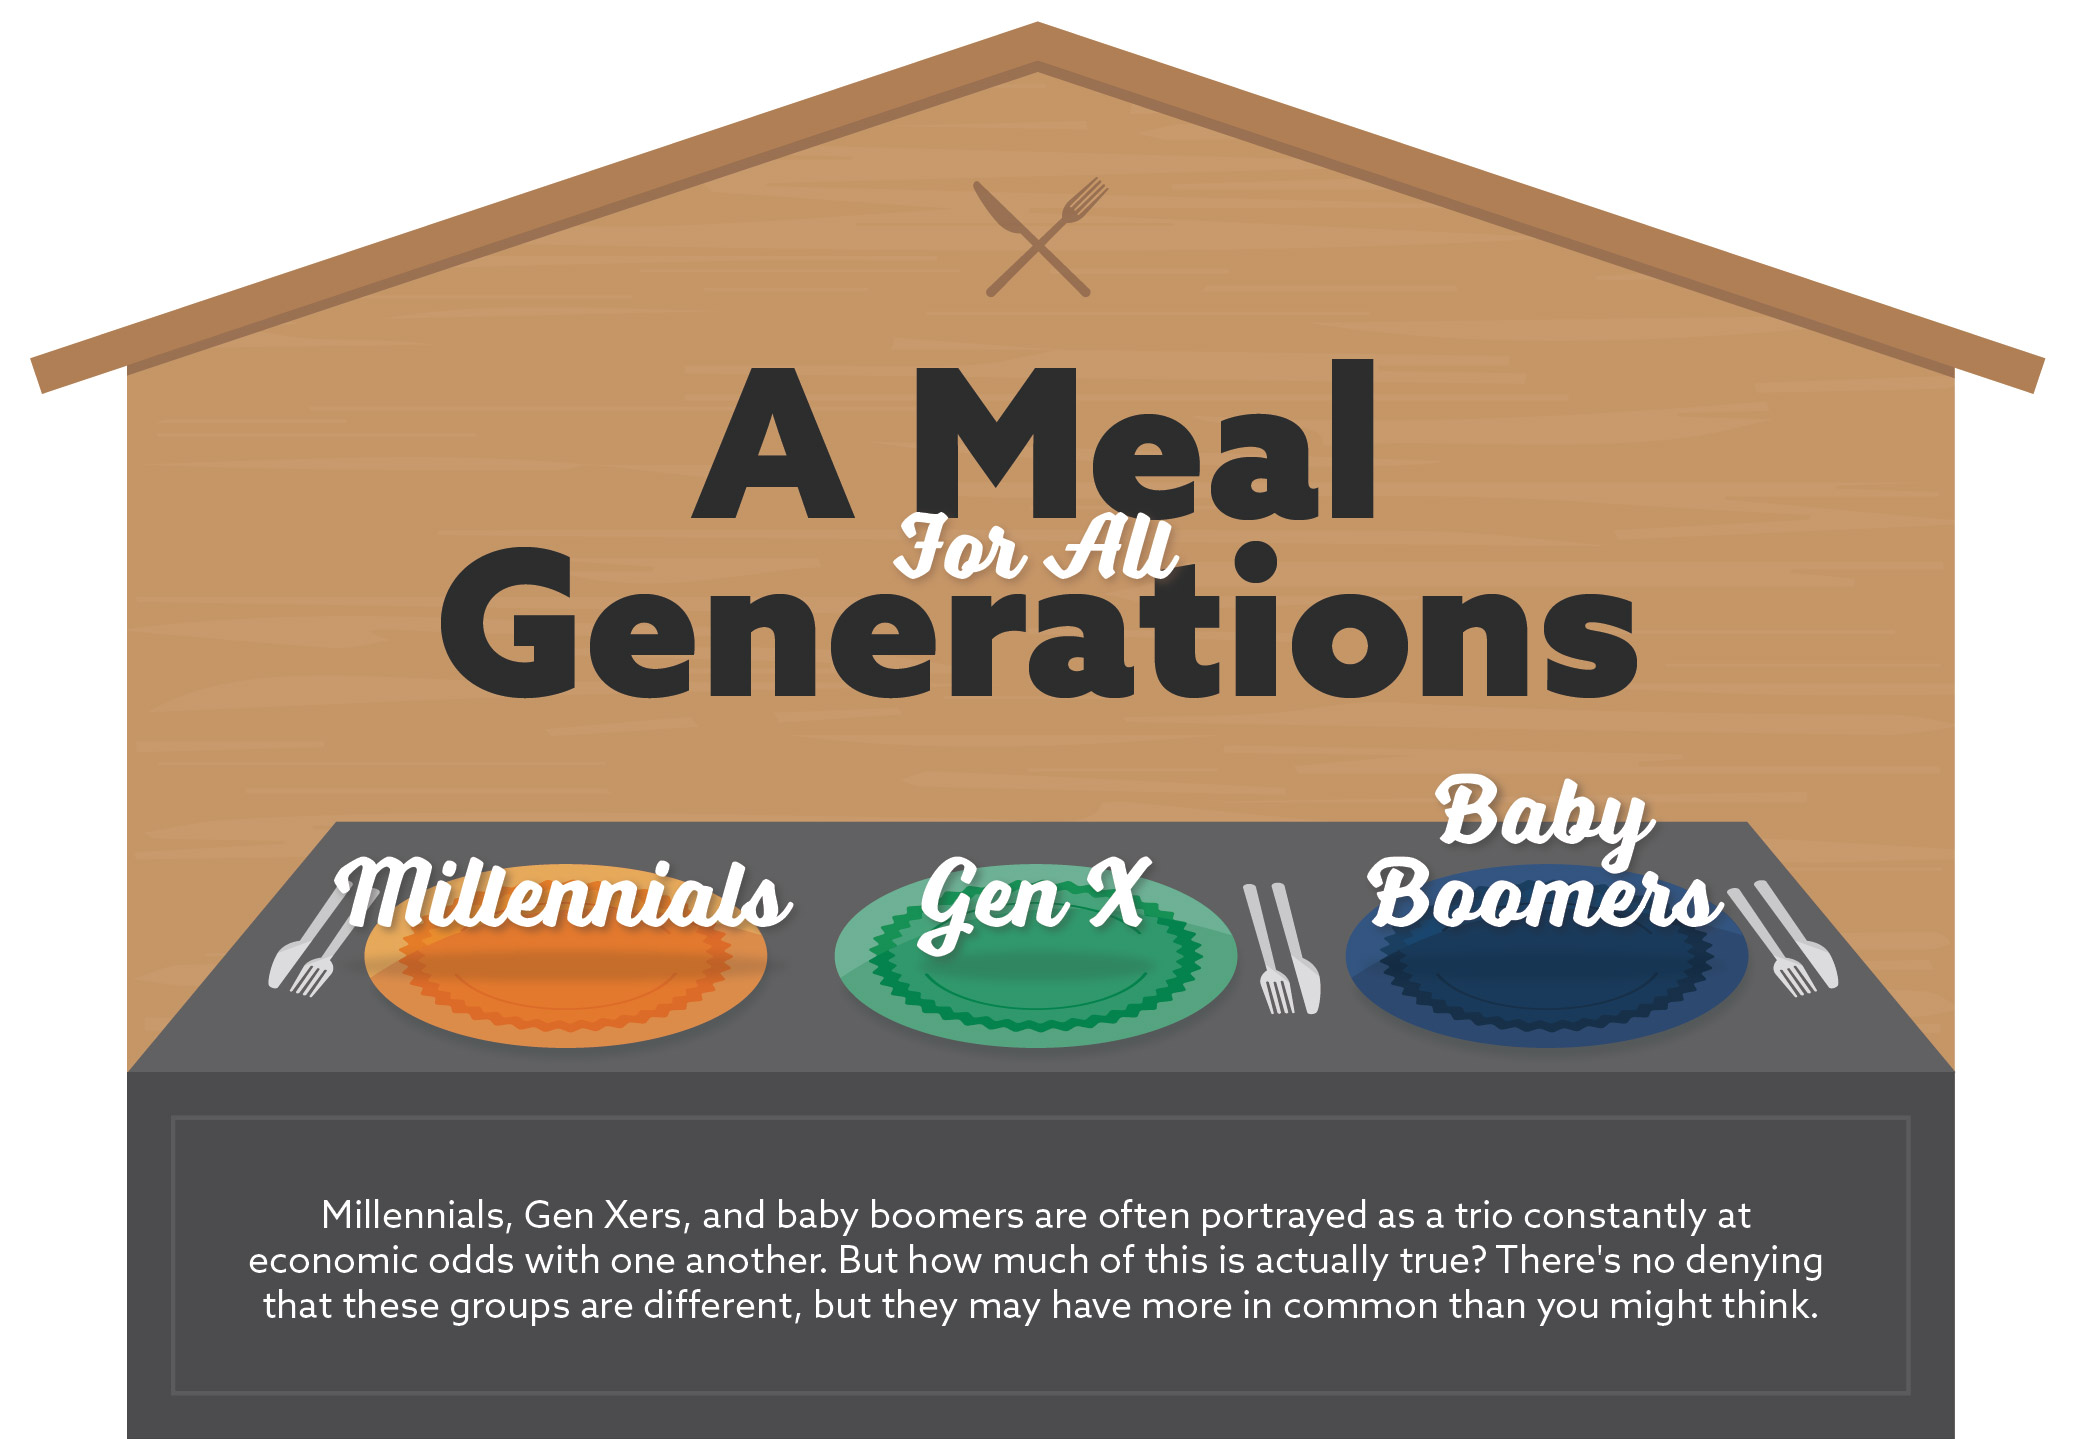 A Meal For All Generations. Millennials, Gen Xers, and baby boomers are often portrayed as a trio constantly at economic odds with one another. But how much of this is actually true? There's no denying that these groups are different, but they may have more in common than you might think.